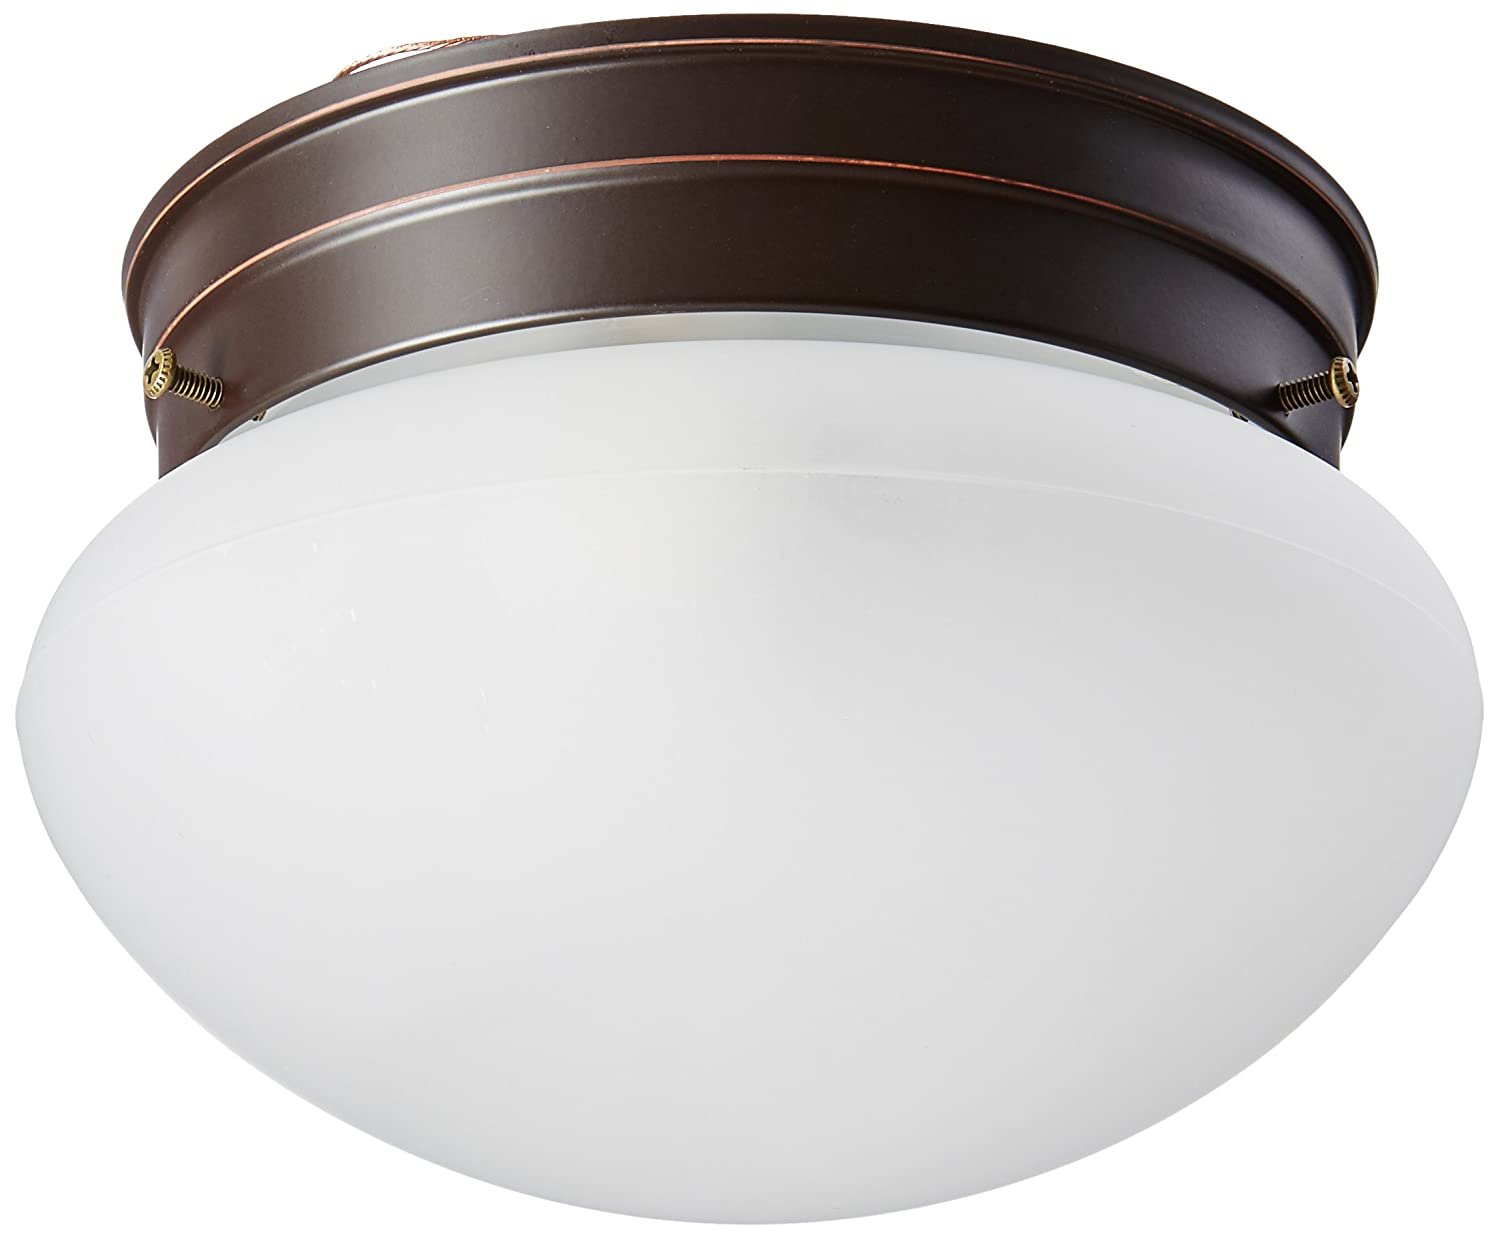 Nuvo lighting 60 2641 single light small mushroom flush mount ceiling fixture with frosted glass shade close to ceiling light fixtures amazon com